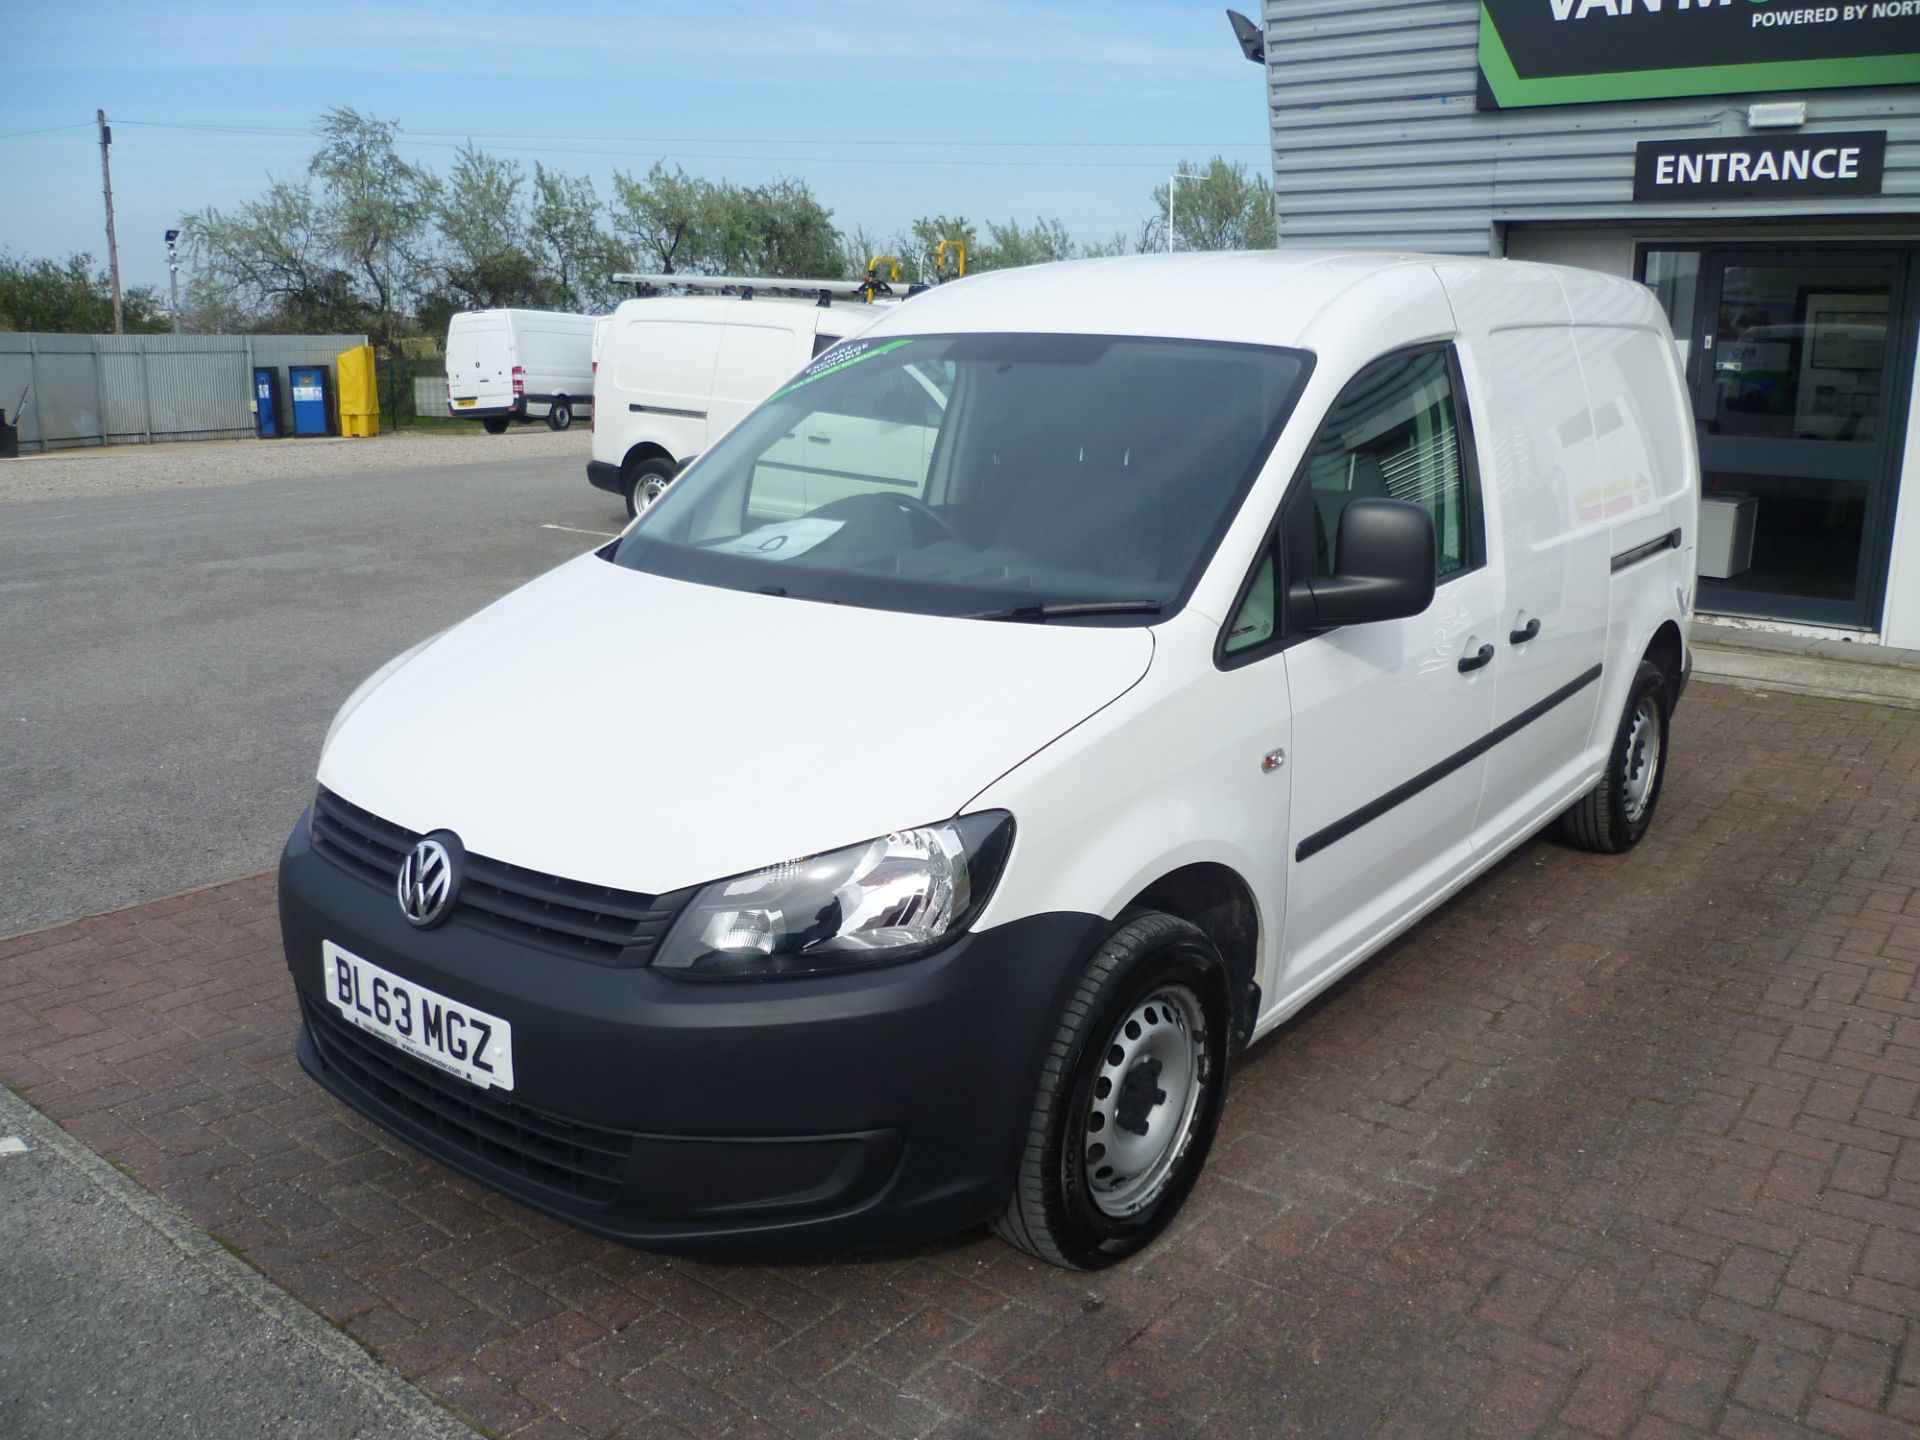 2014 Volkswagen Caddy 1.6 BLUEMOTION 102PS STARTLINE EURO 5 (BL63MGZ) Thumbnail 2